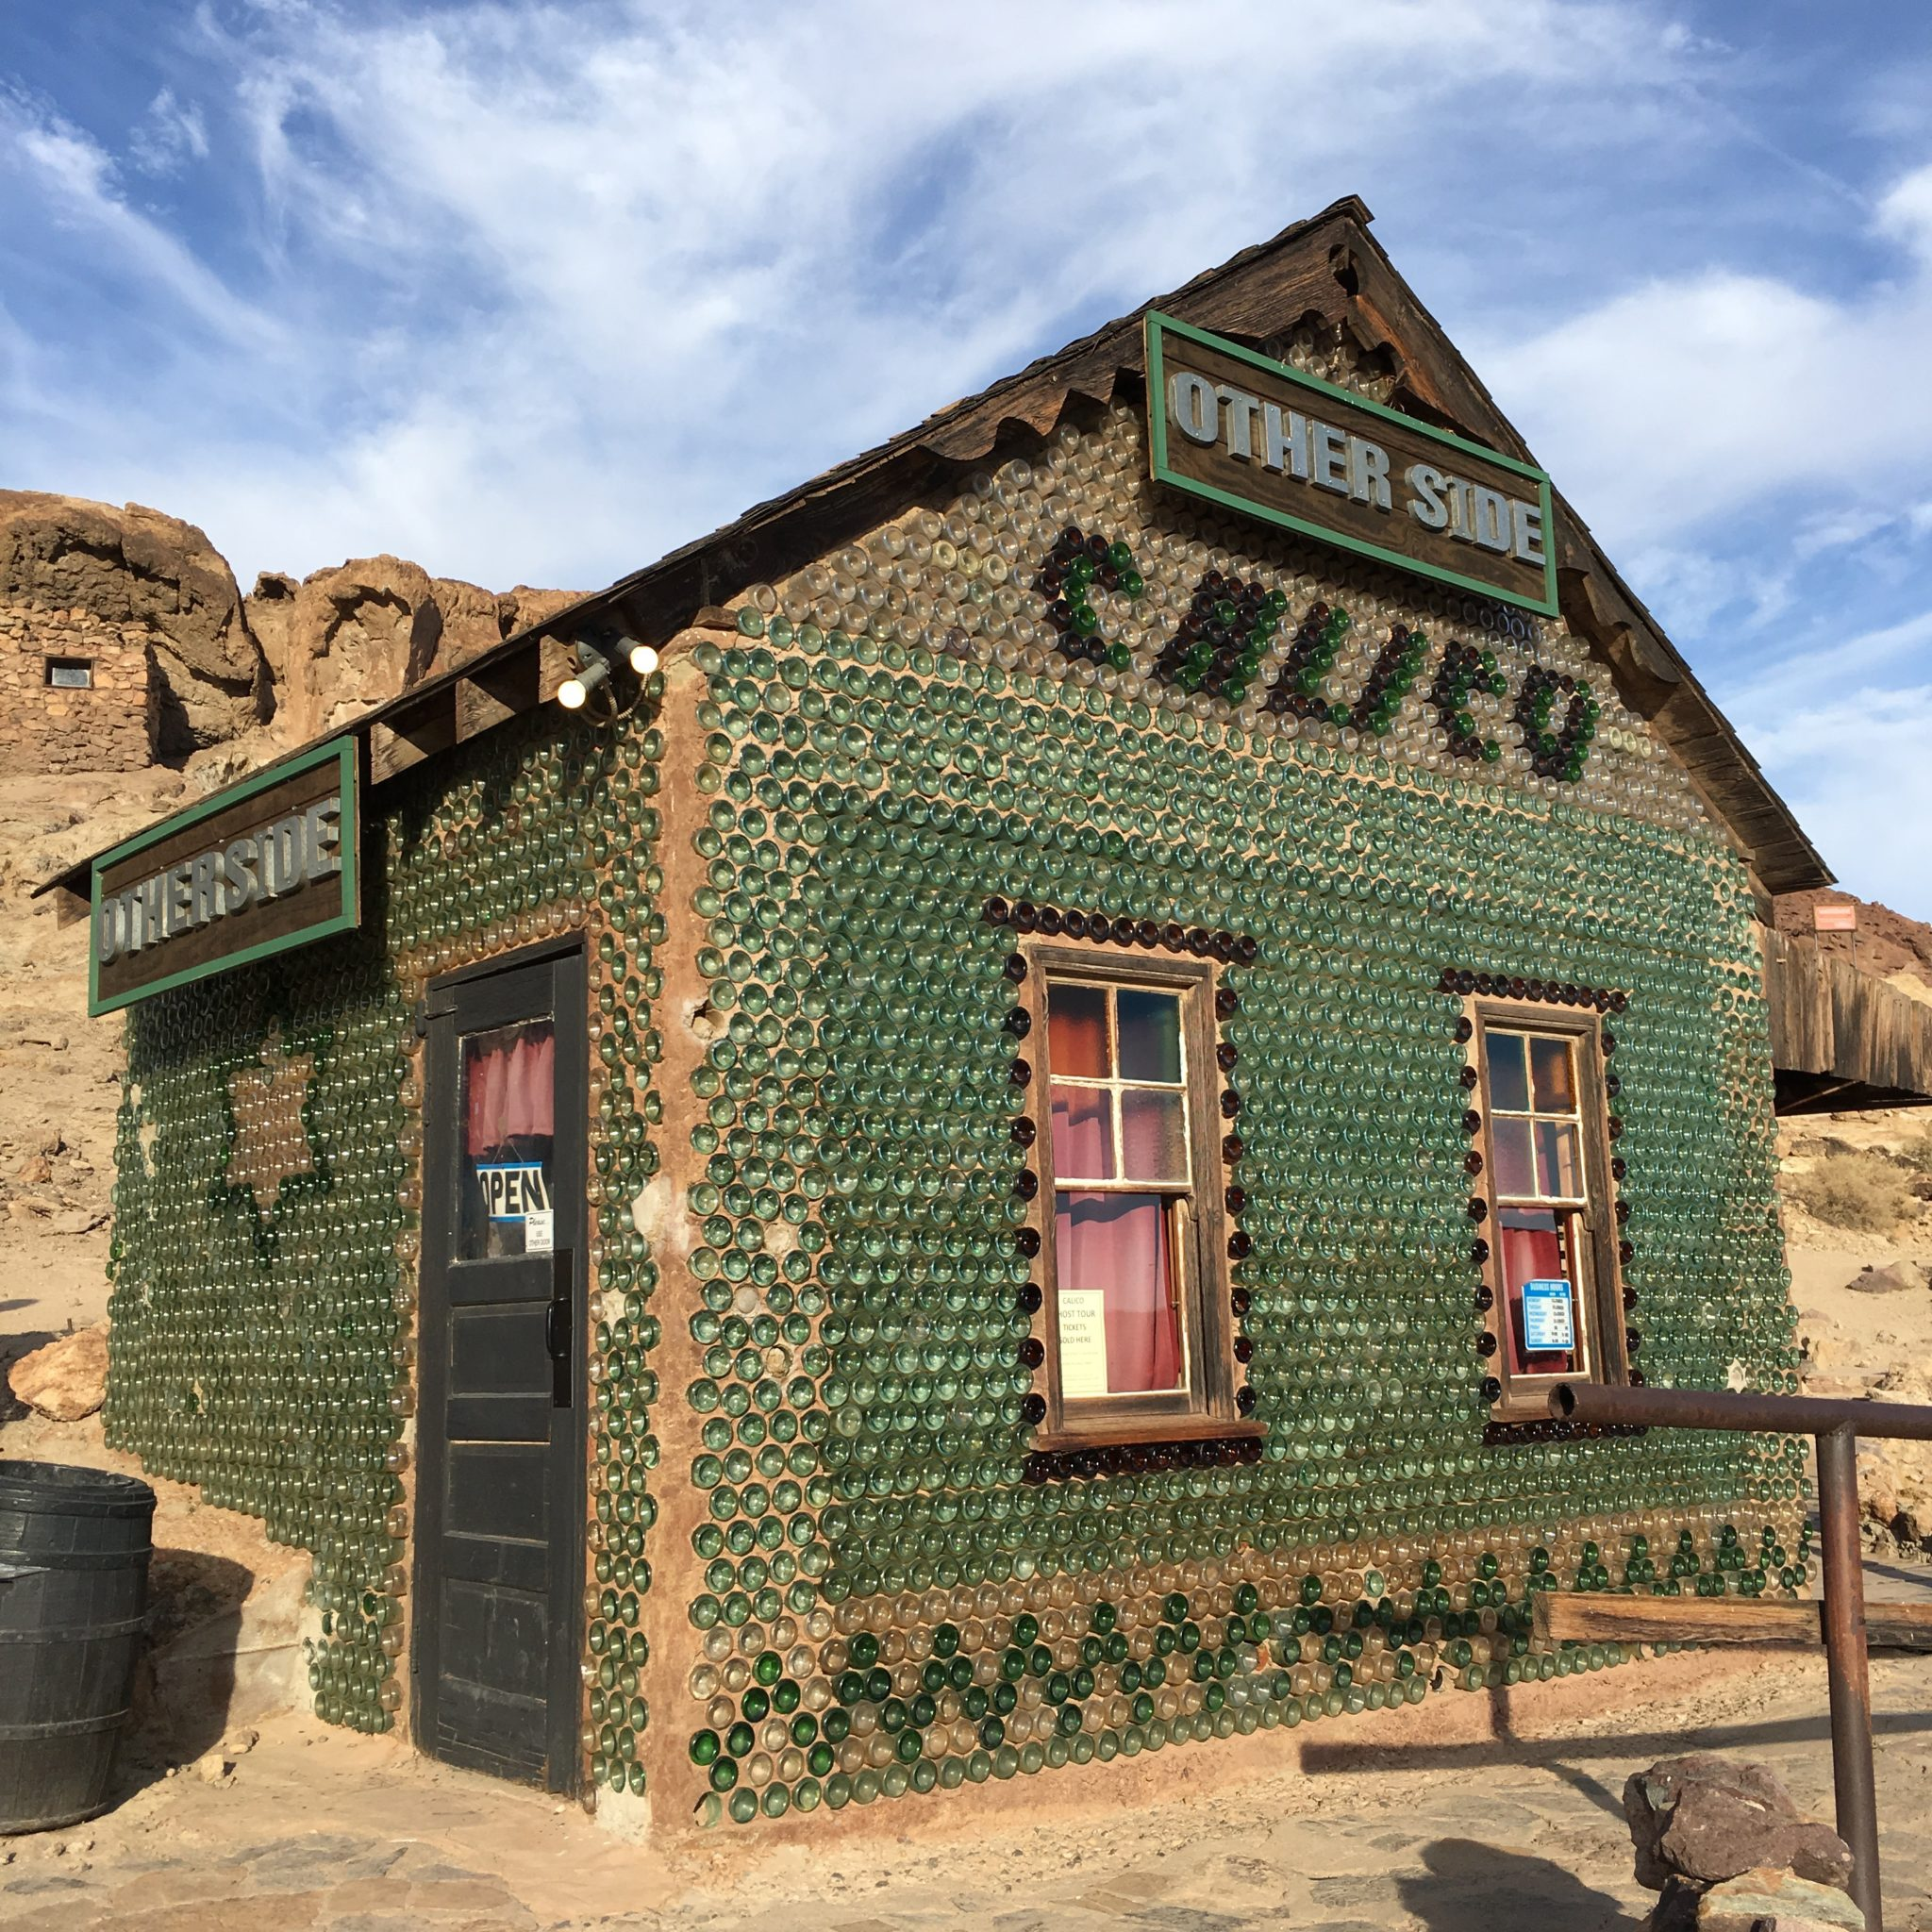 Visiting Calico Ghost Town (Calico, CA)